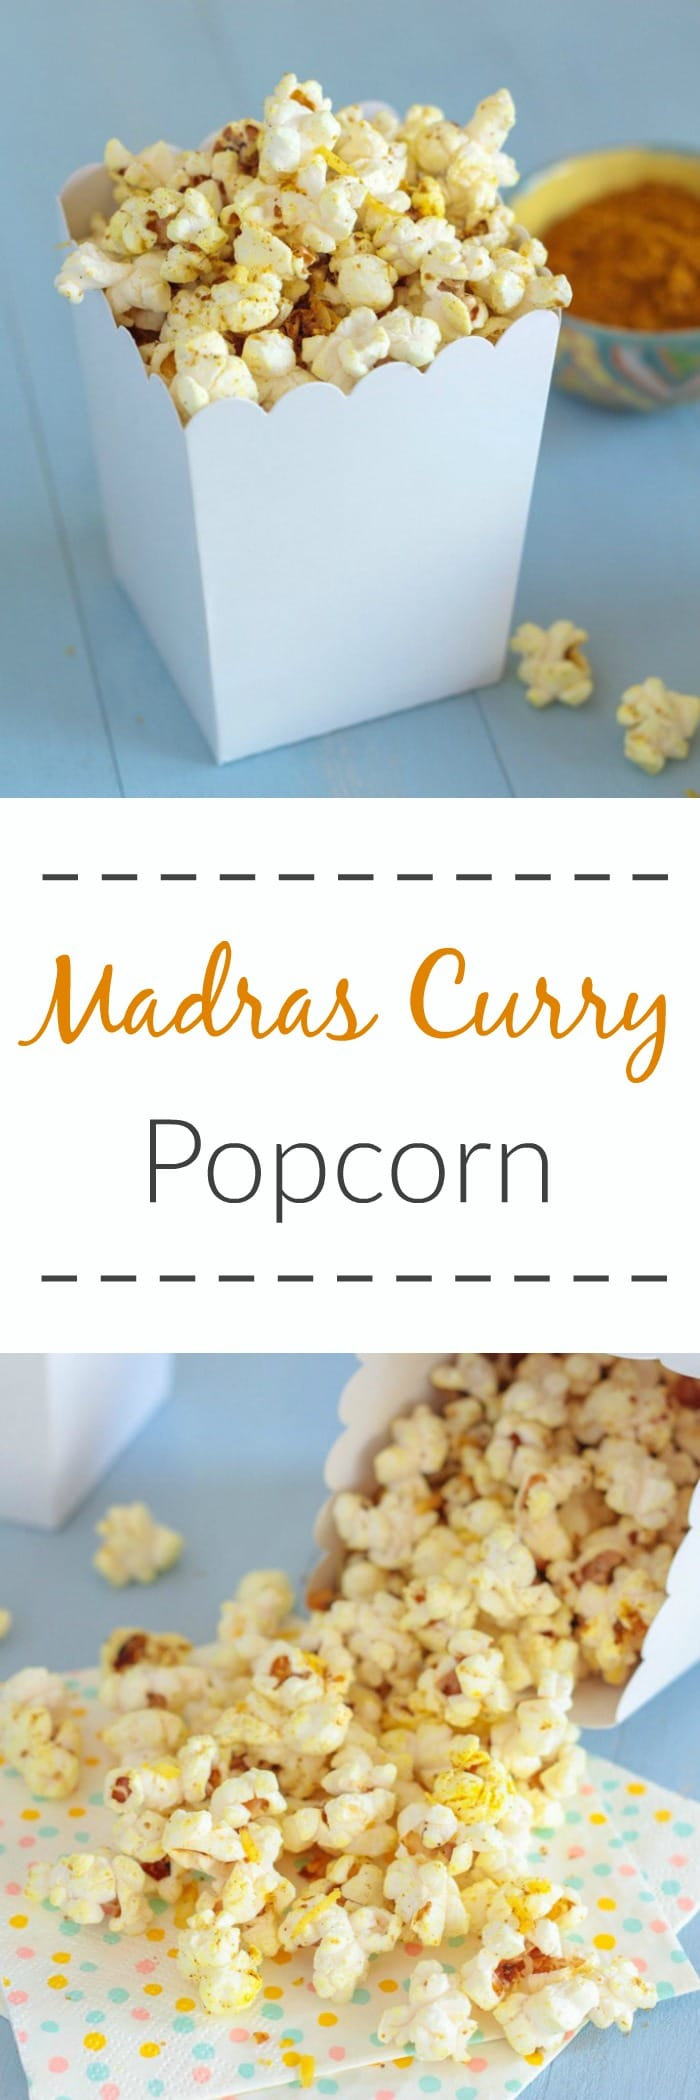 Madras Curry Popcorn - Le Petit Eats